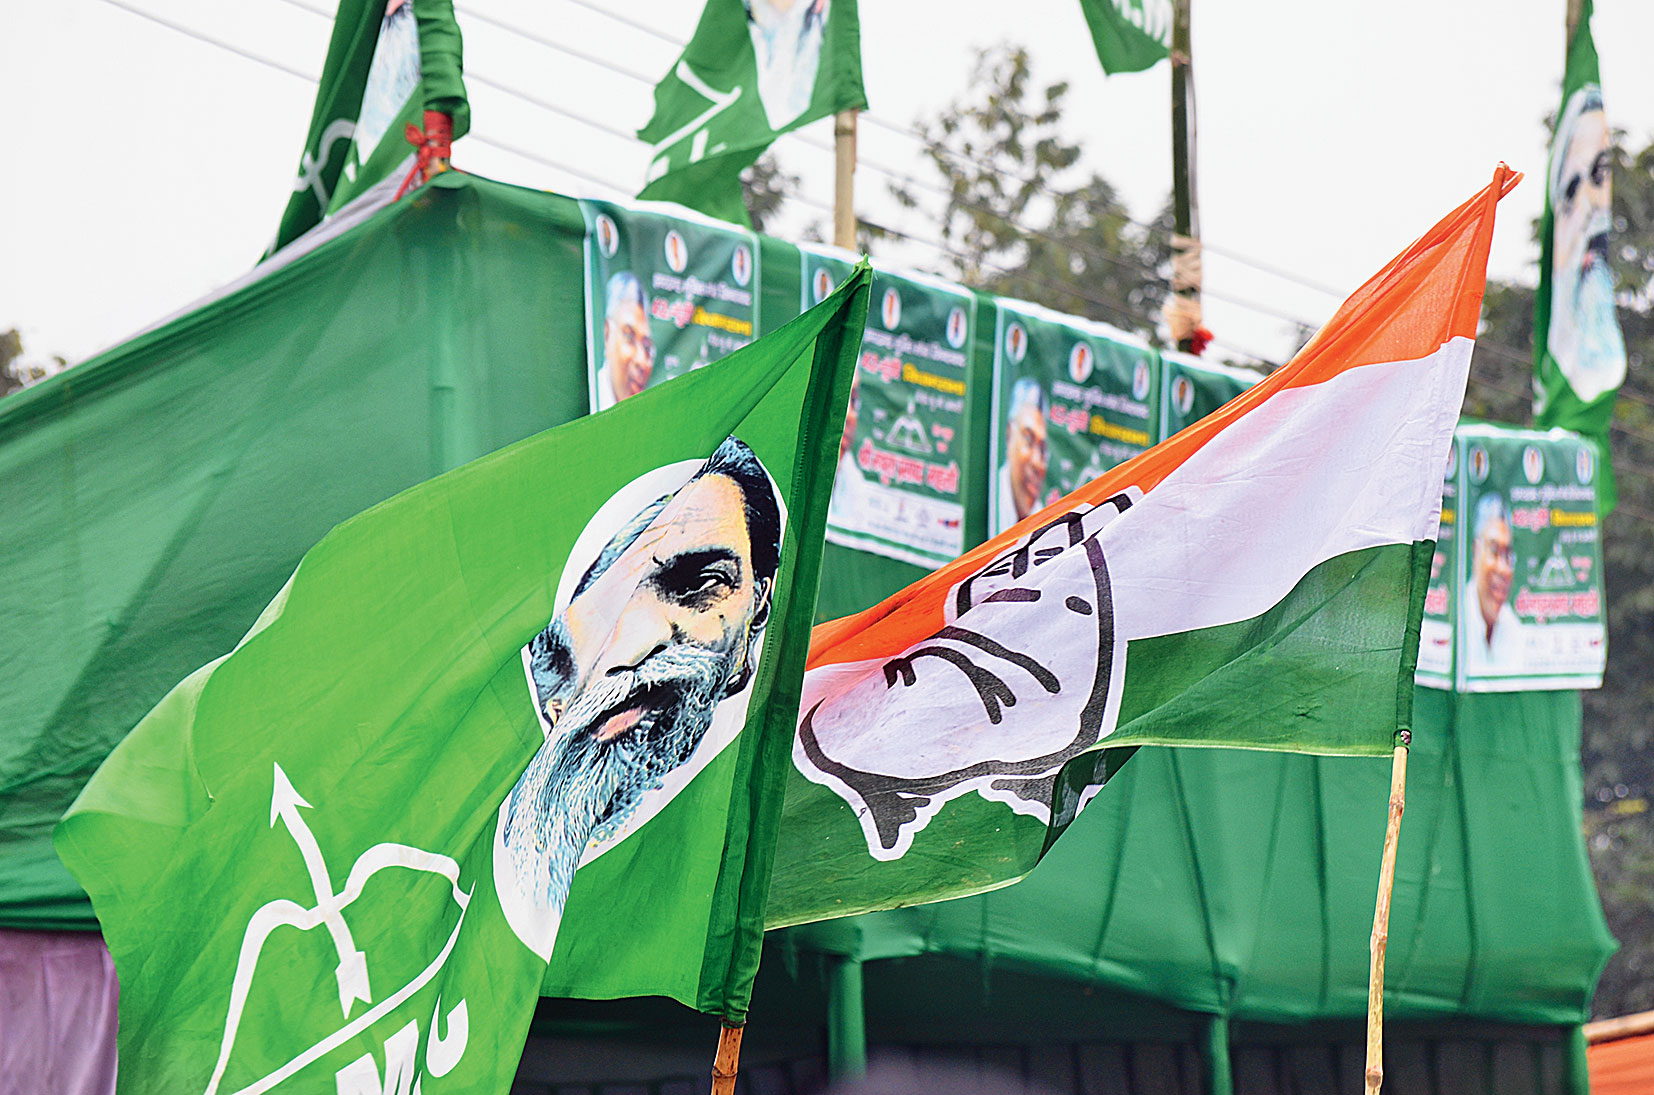 JMM and Congress flags fly high at the Bazar Samiti counting centre in Dhanbad.